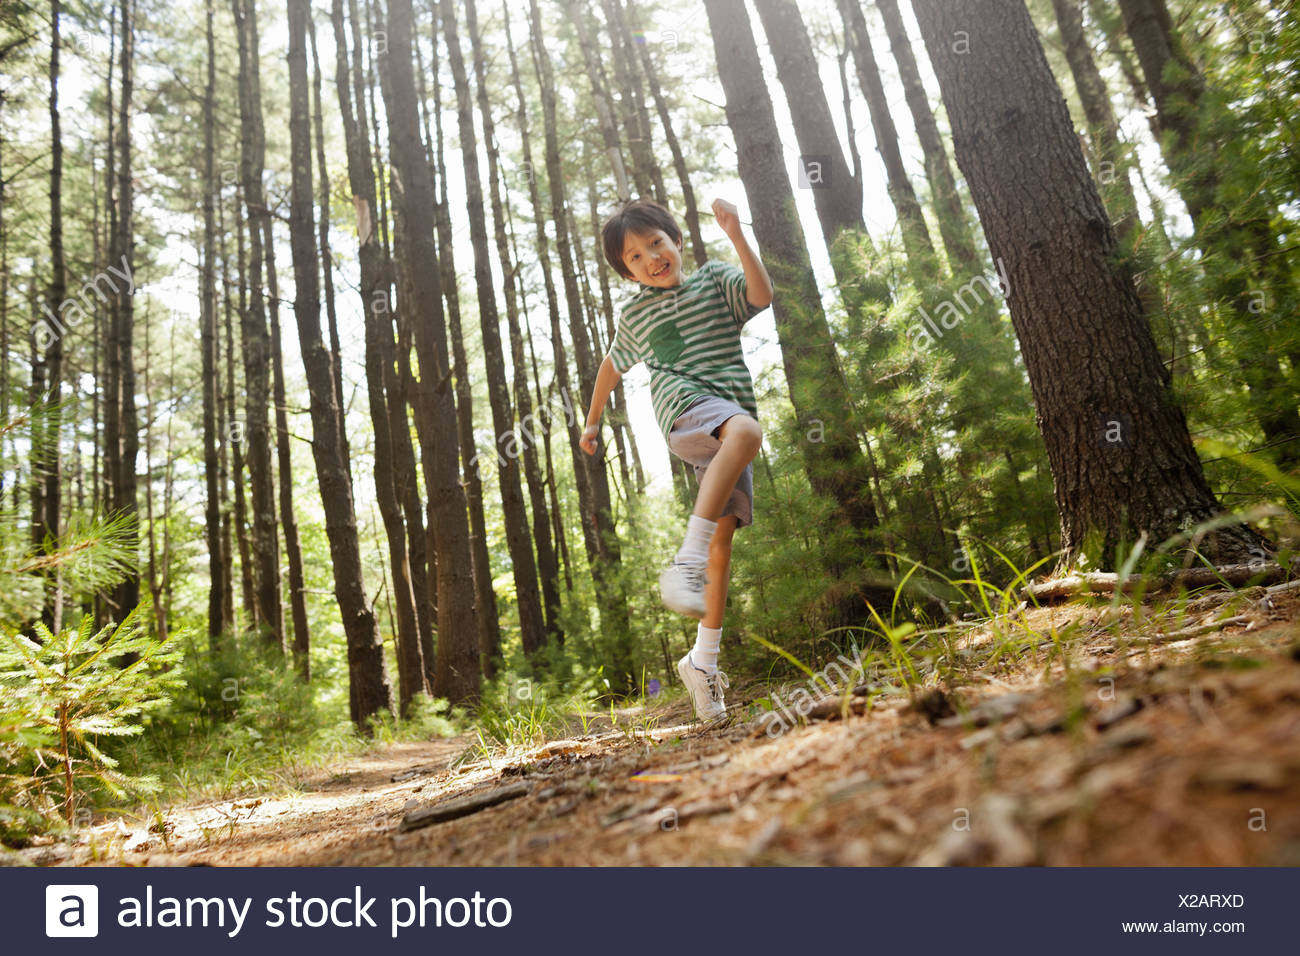 Woodstock New York USA young boy playing in the pine forest tree trunks - Stock Image